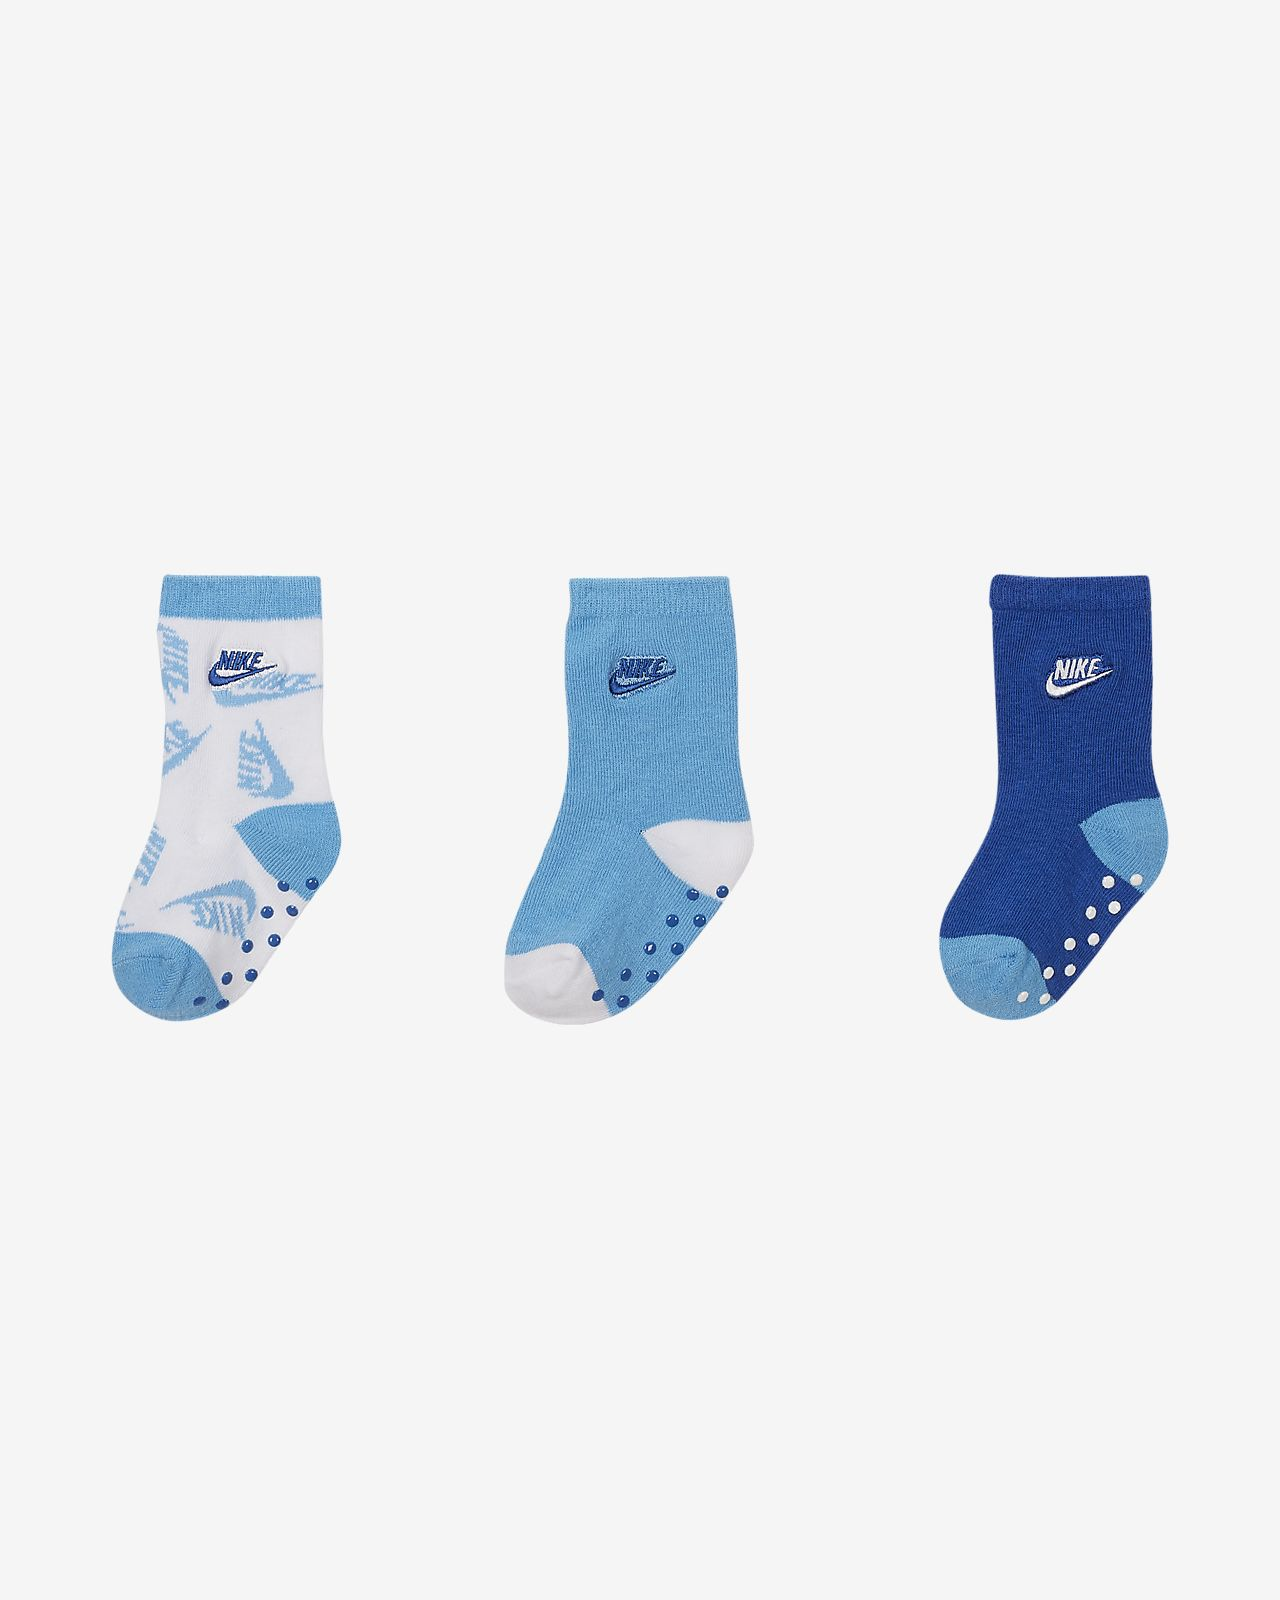 Nike Toddler Gripper Crew Socks (3-Pack)